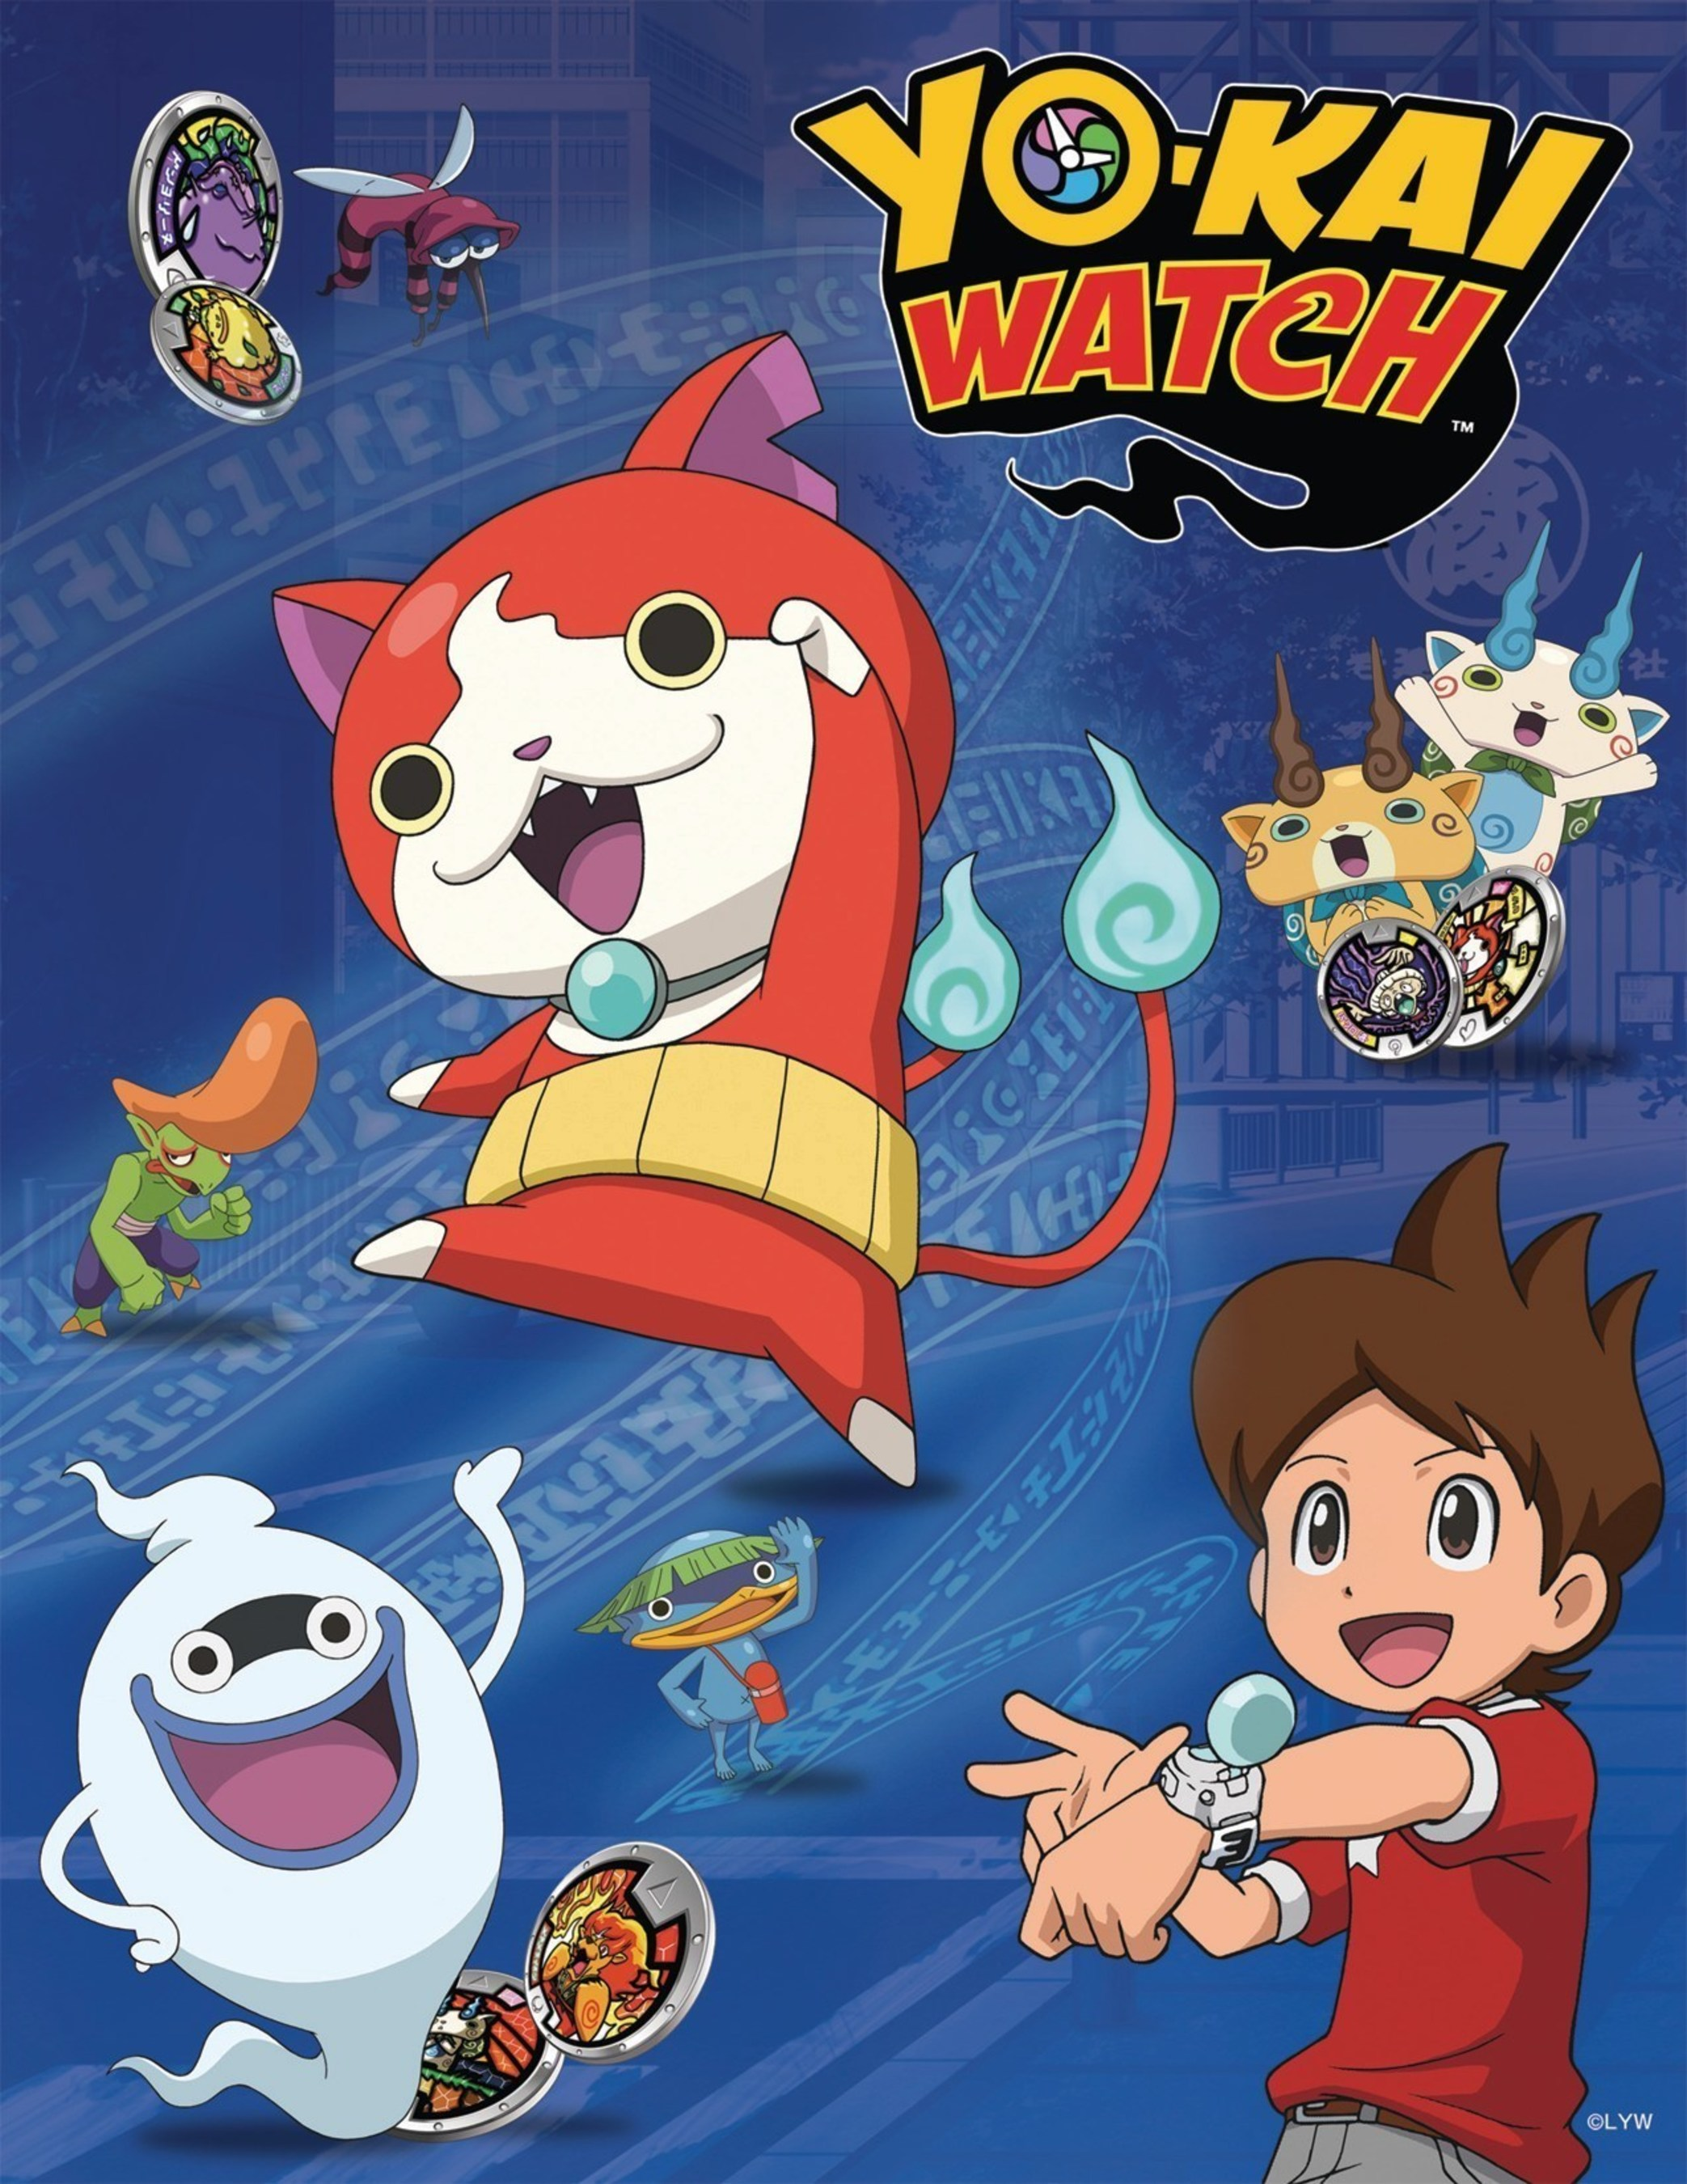 Japanese Phenomenon YO-KAI WATCH'' To Begin Airing On Disney XD In The U.S. Later This Year!